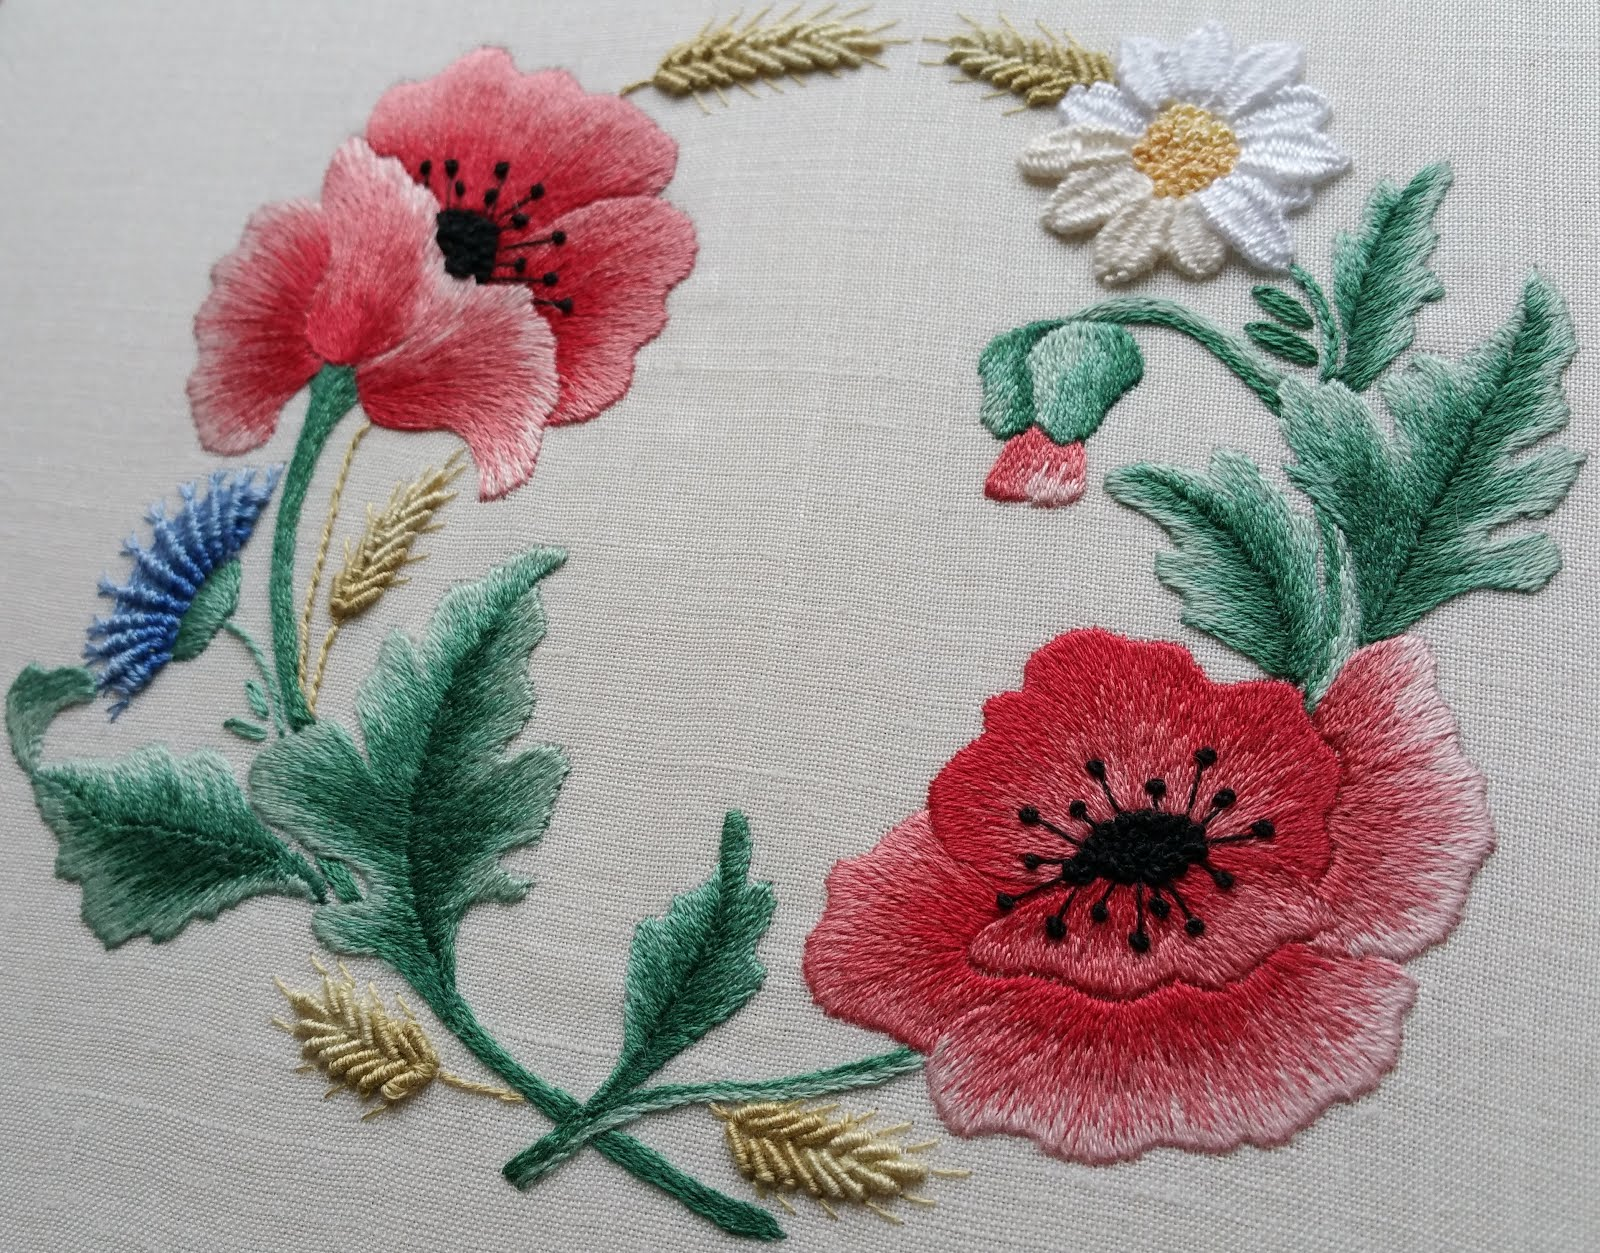 Flanders Poppies (A Master Class in Silk Shading)